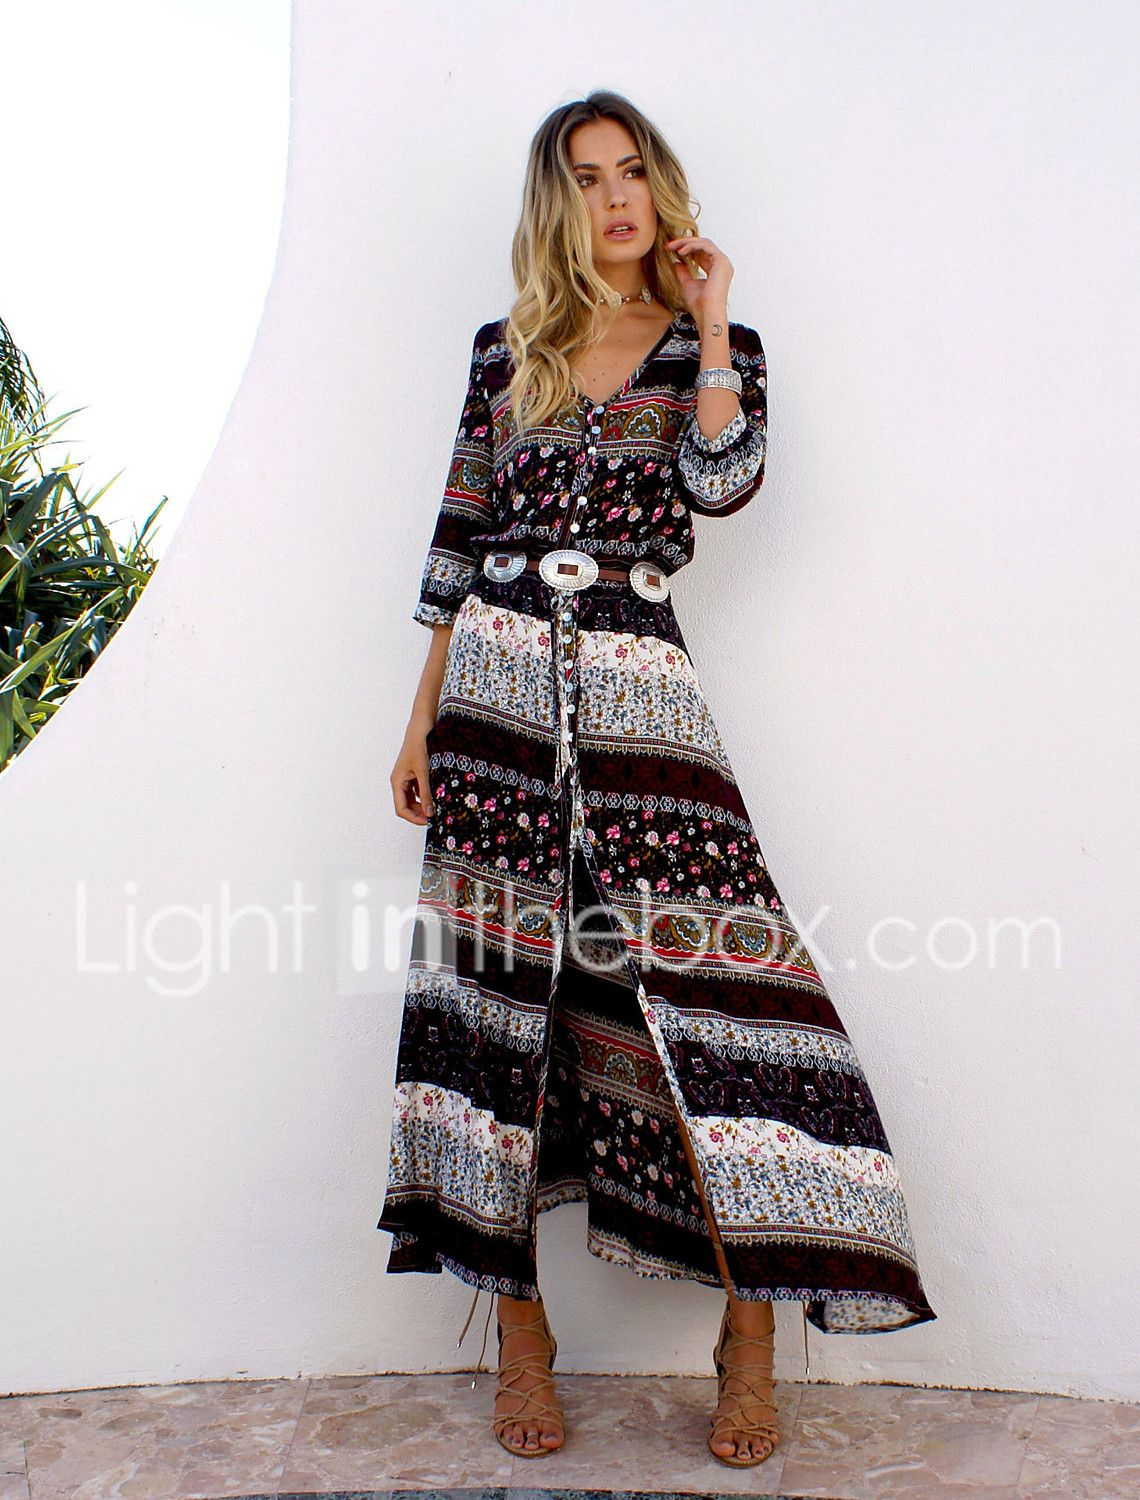 b15388dff40 Women s Boho Plus Size Holiday   Beach Boho Maxi Tunic Dress ...